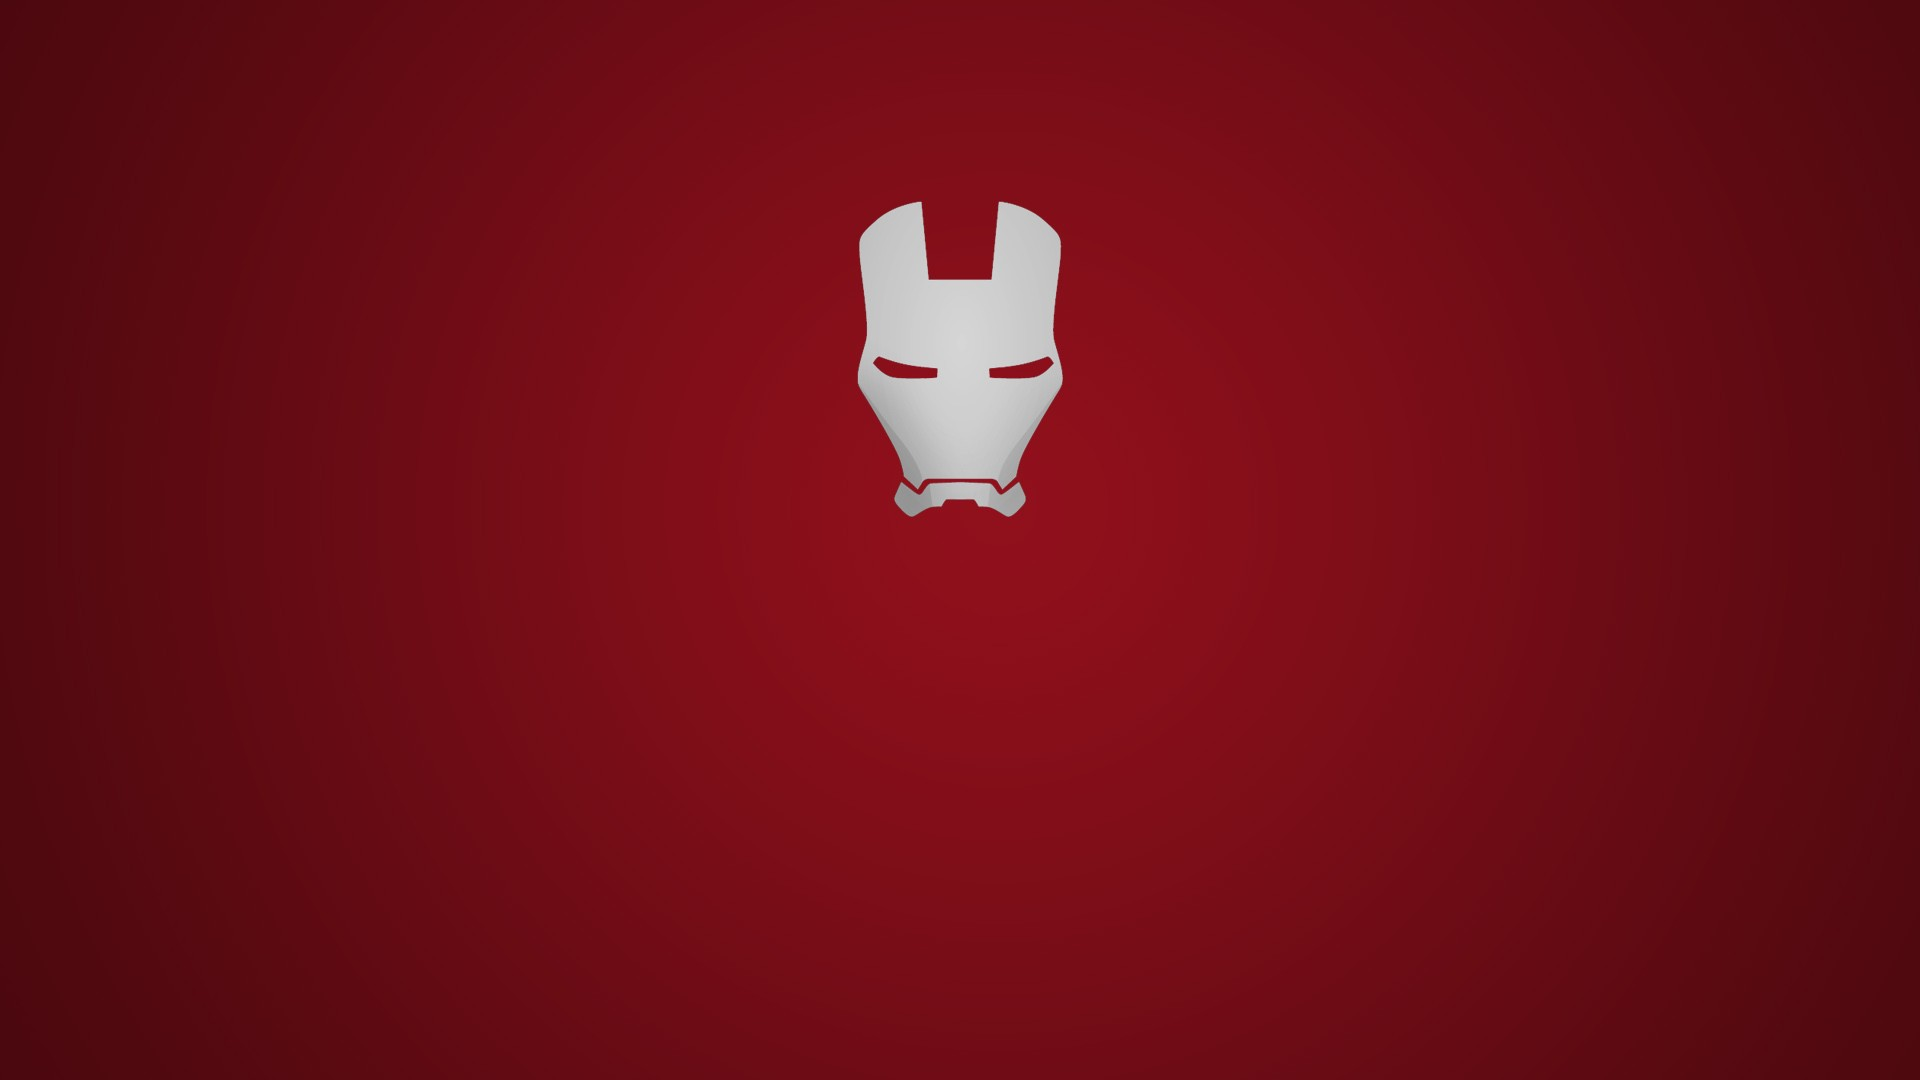 Iron Man Simple 1